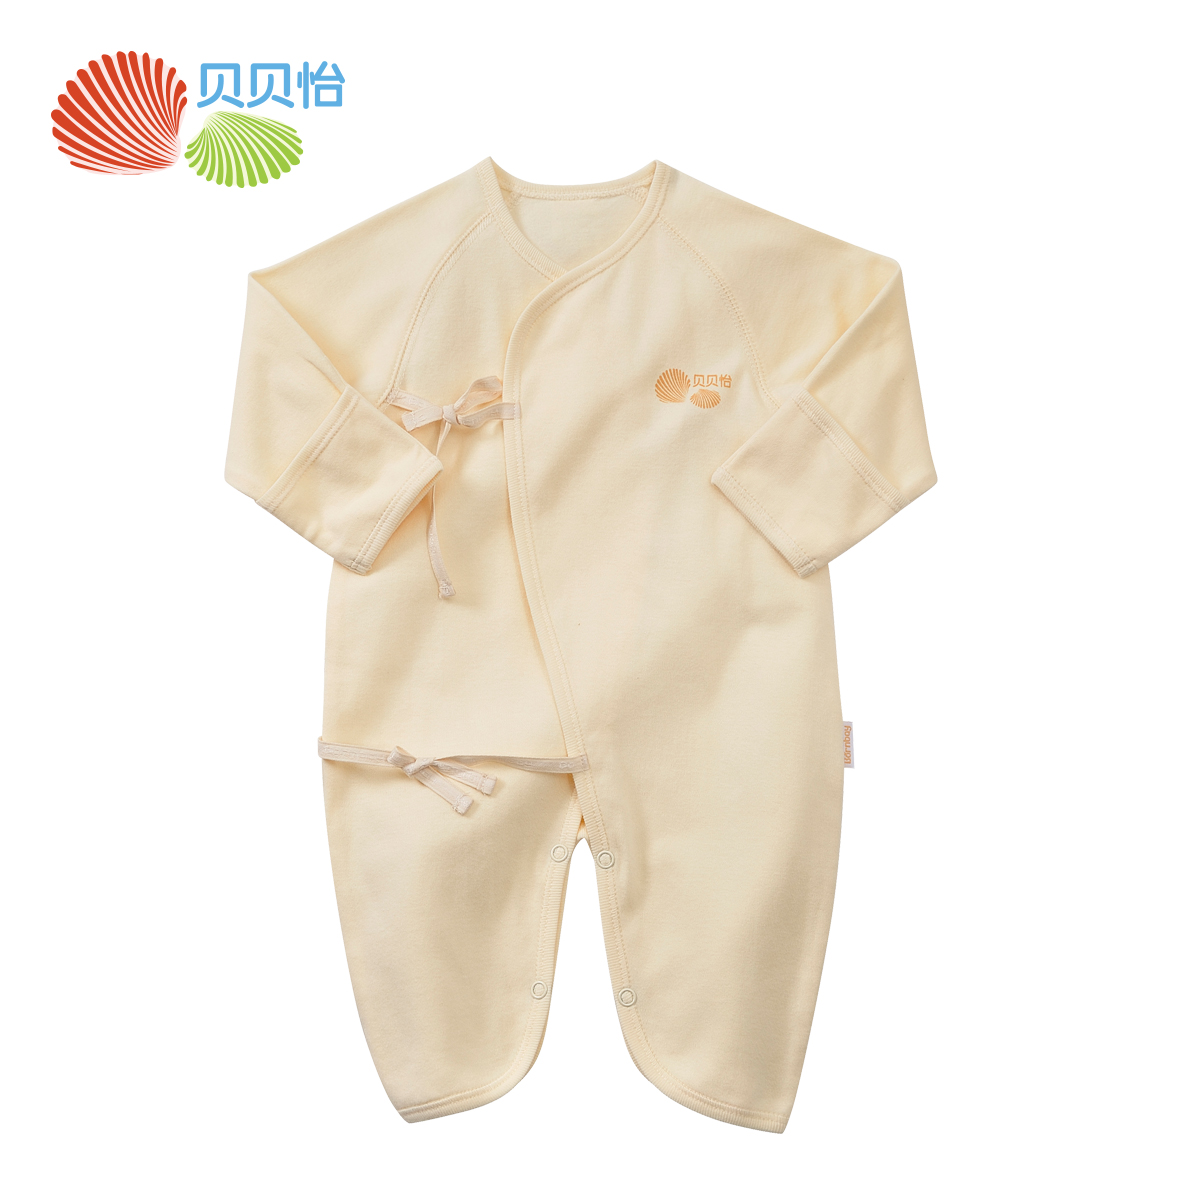 Beibei yi baby clothes long sleeve thin section of the spring and autumn cotton romper newborn baby climb clothes for men and women BB1015